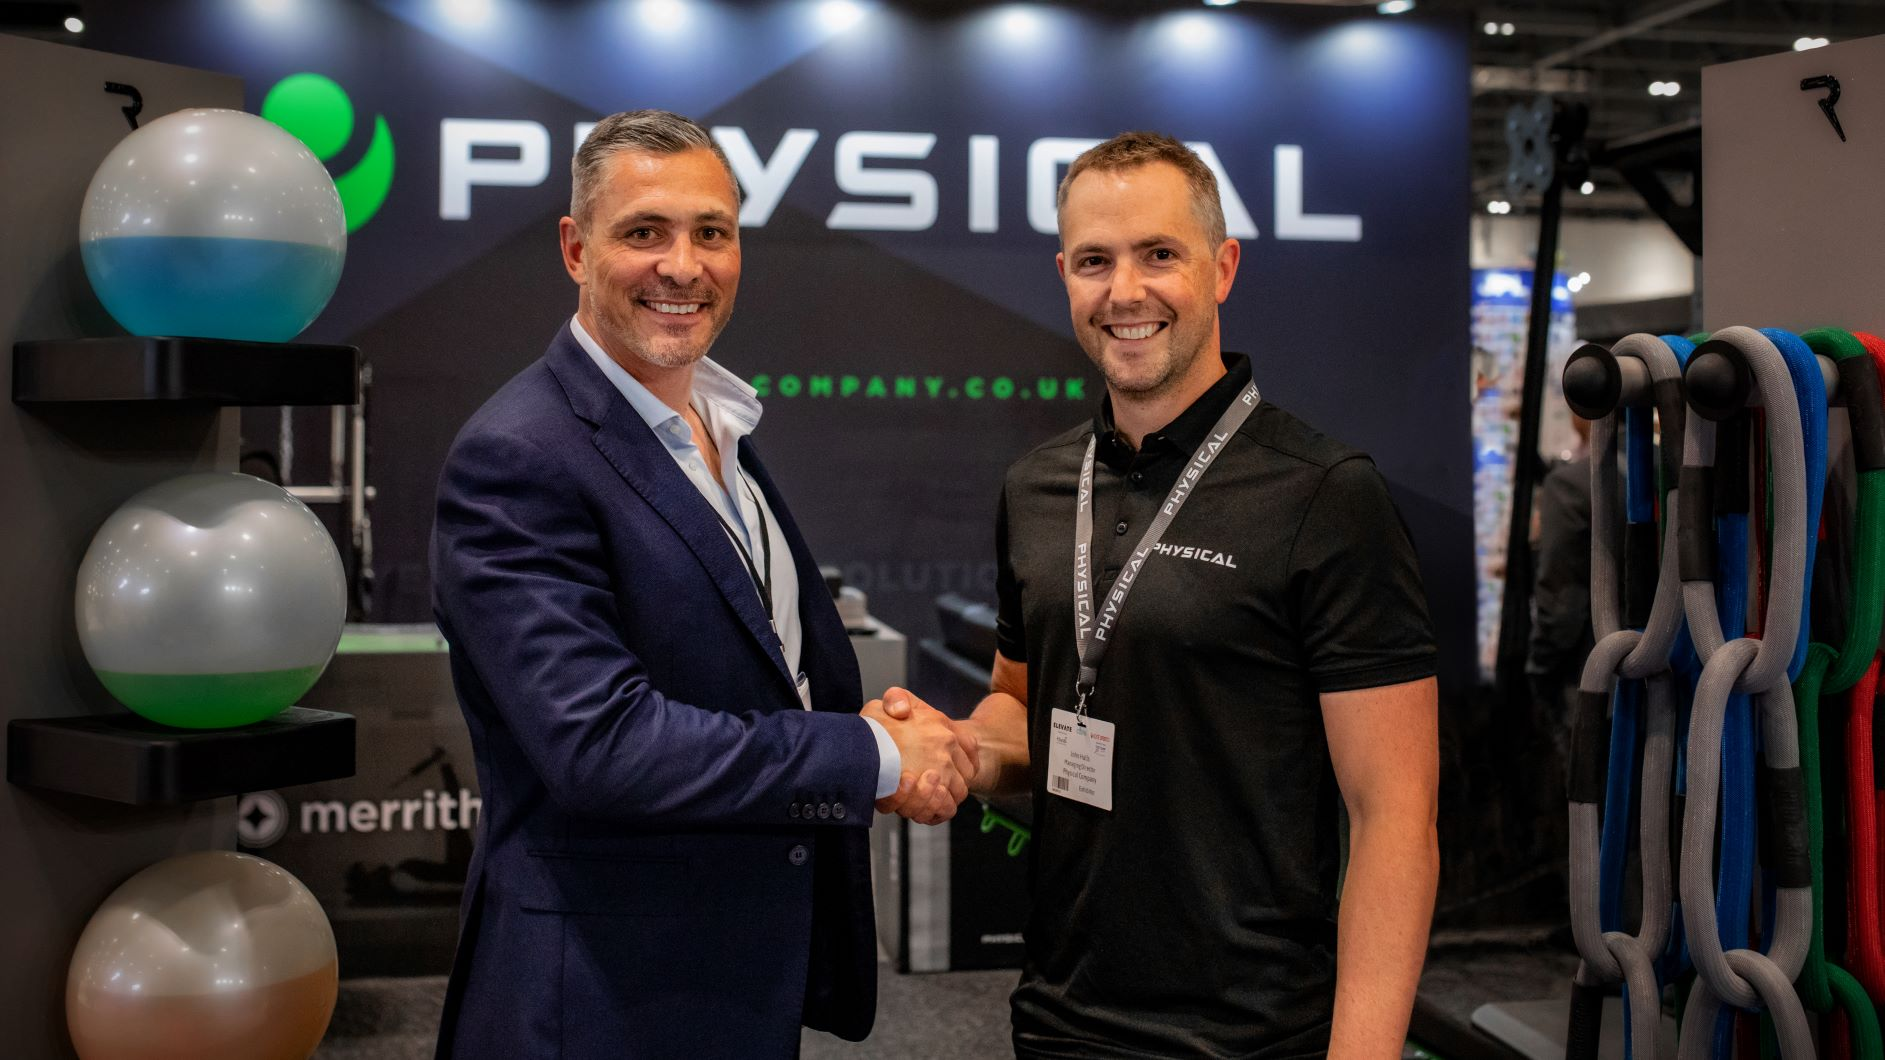 Physical Company named as exclusive UK distributor for neuromuscular fitness innovator Reaxing